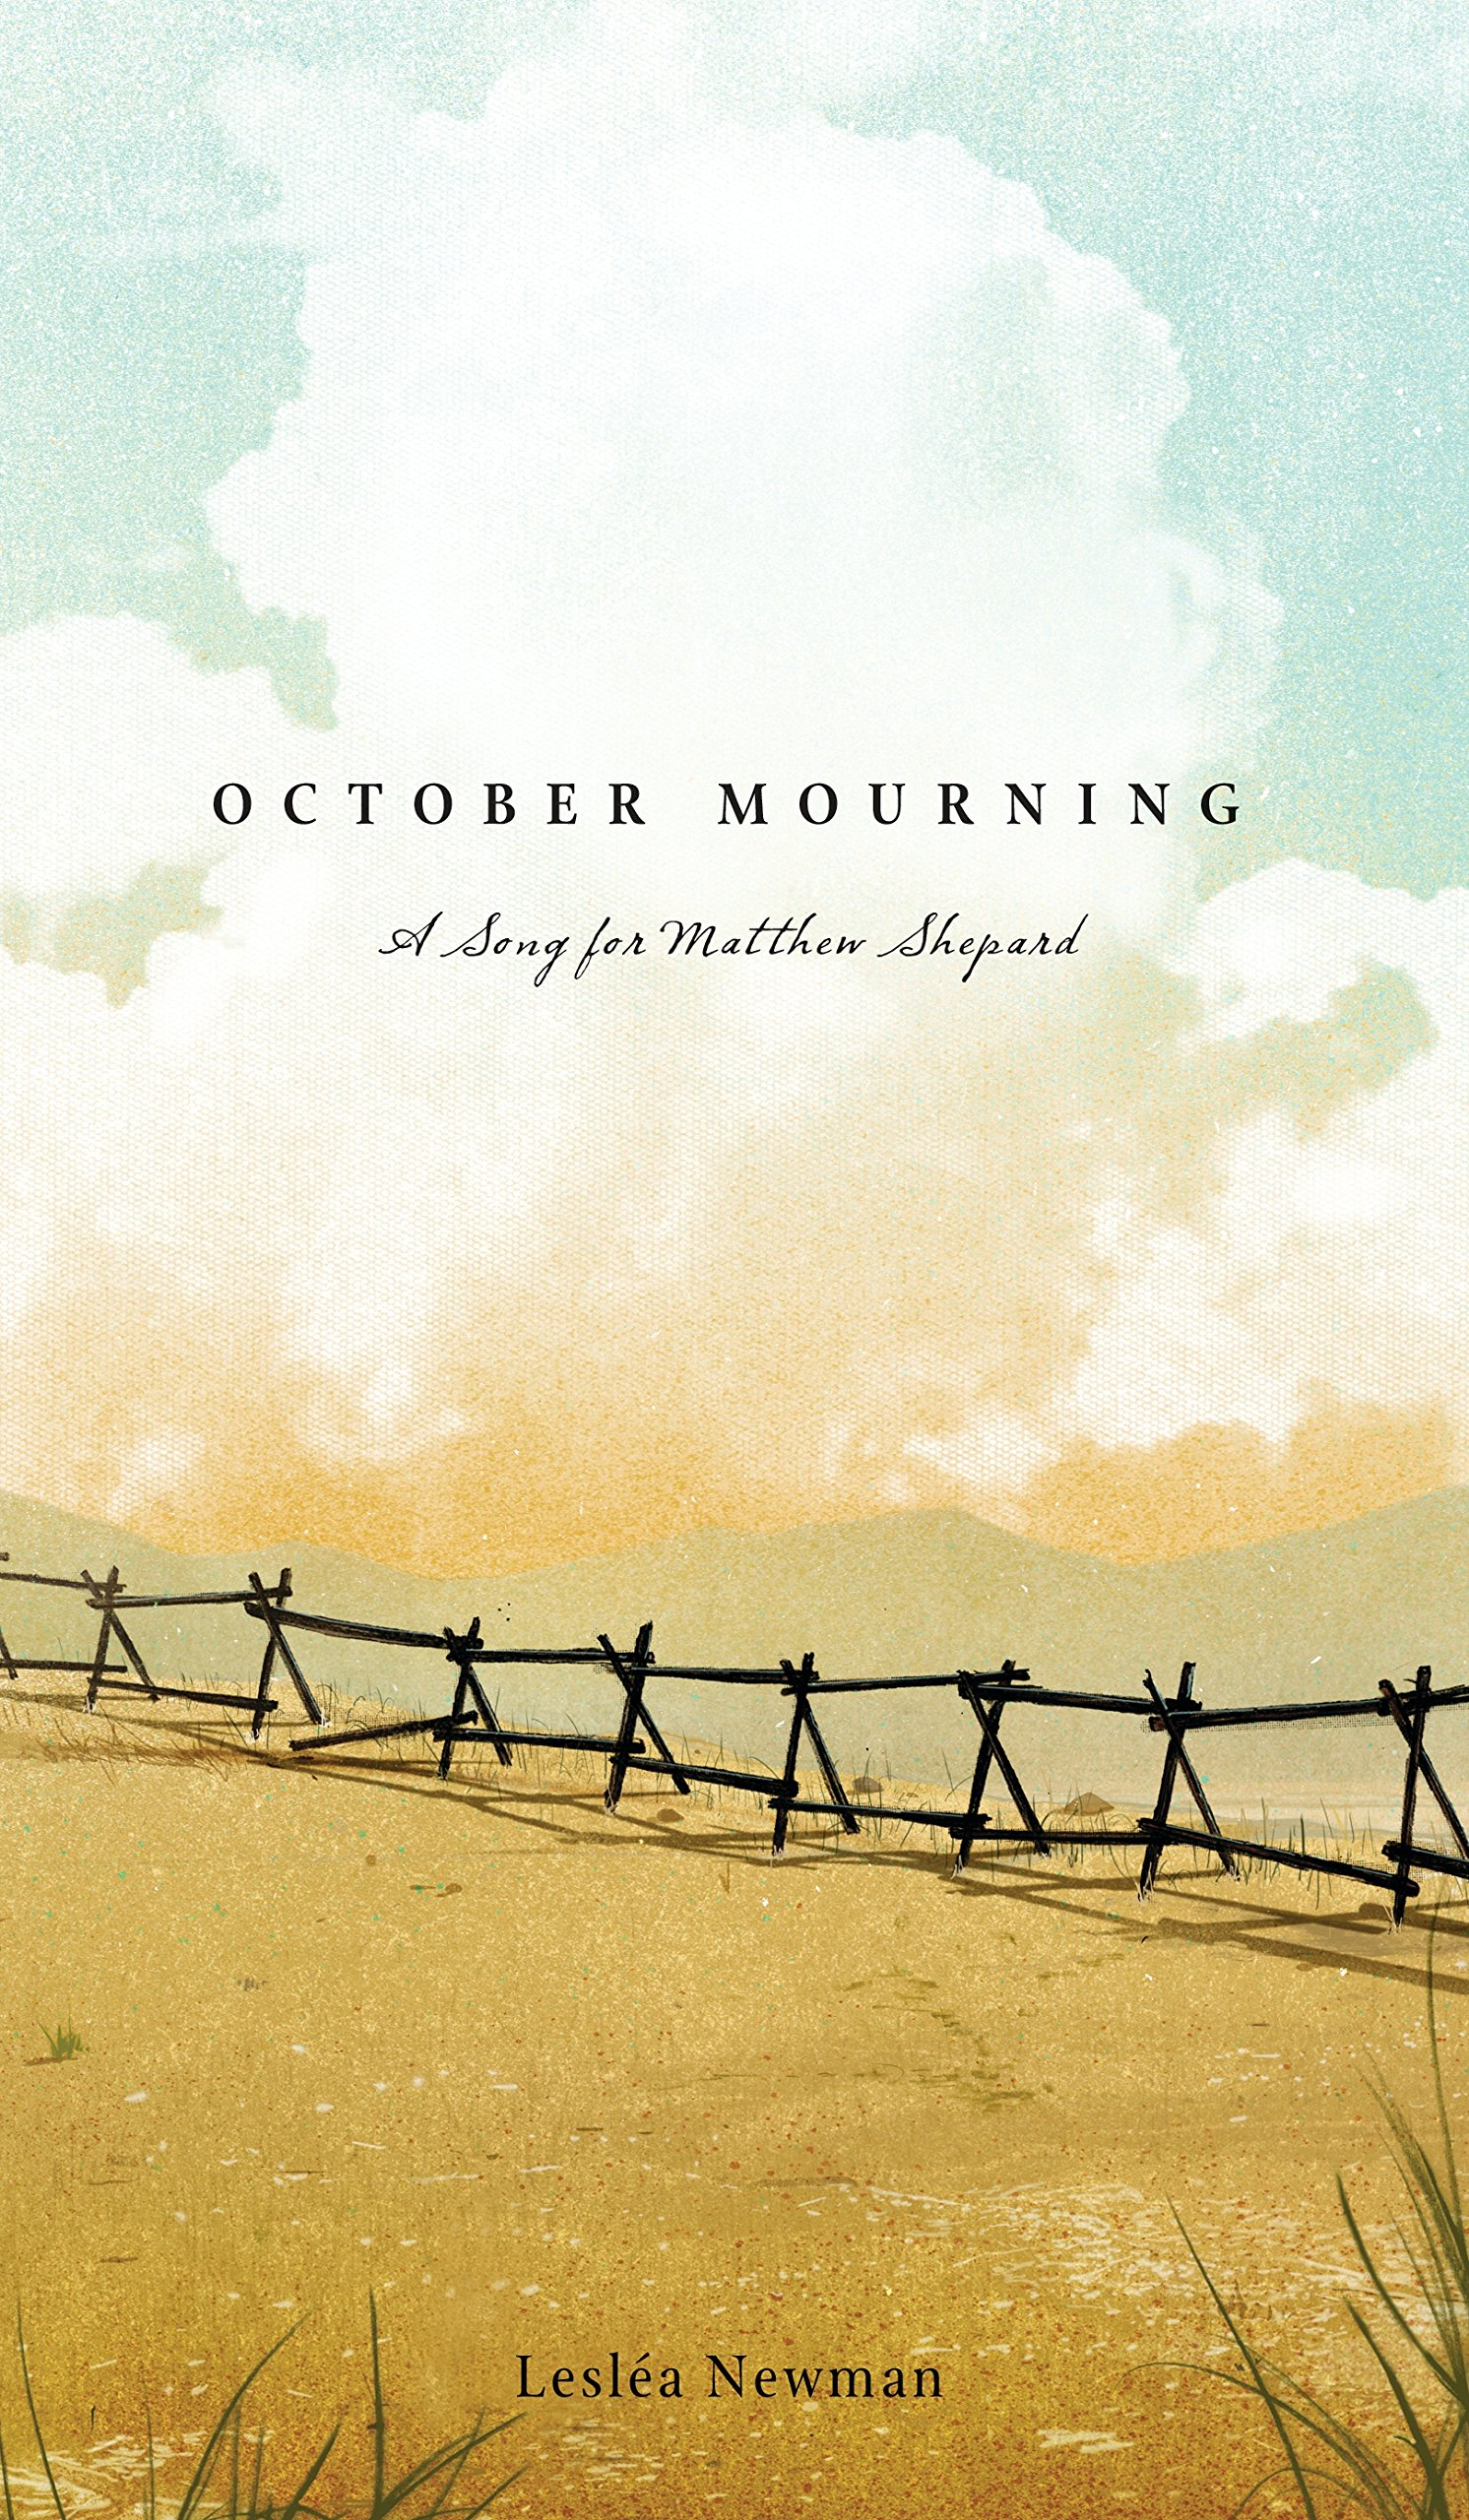 Amazon october mourning a song for matthew shepard amazon october mourning a song for matthew shepard 9780763658076 leslea newman books fandeluxe Images